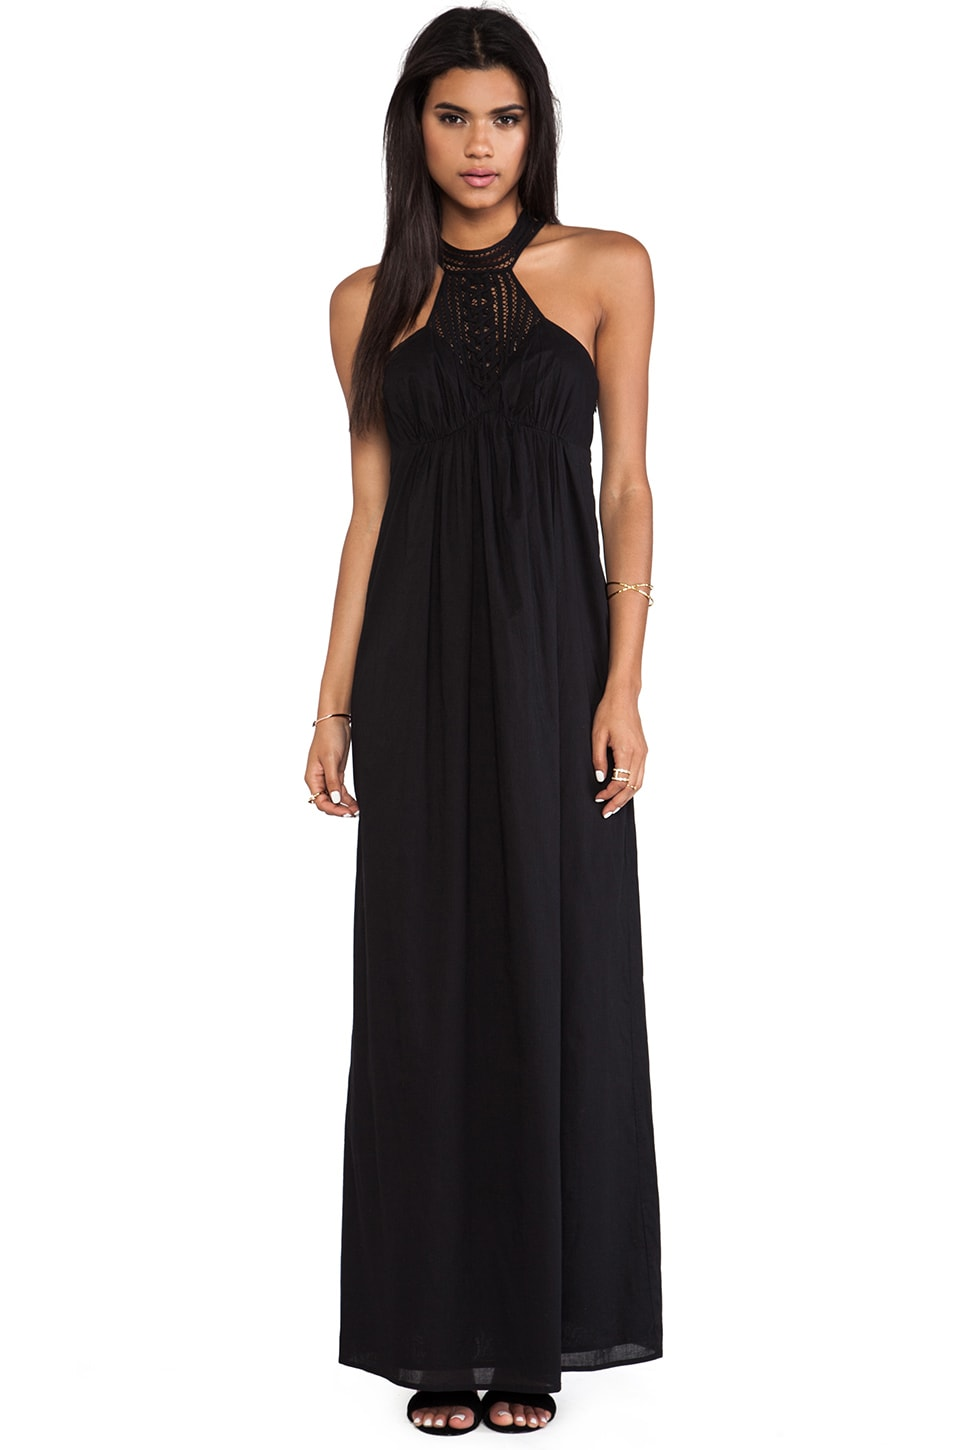 Susana Monaco Voile Josephine Maxi Dress in Black